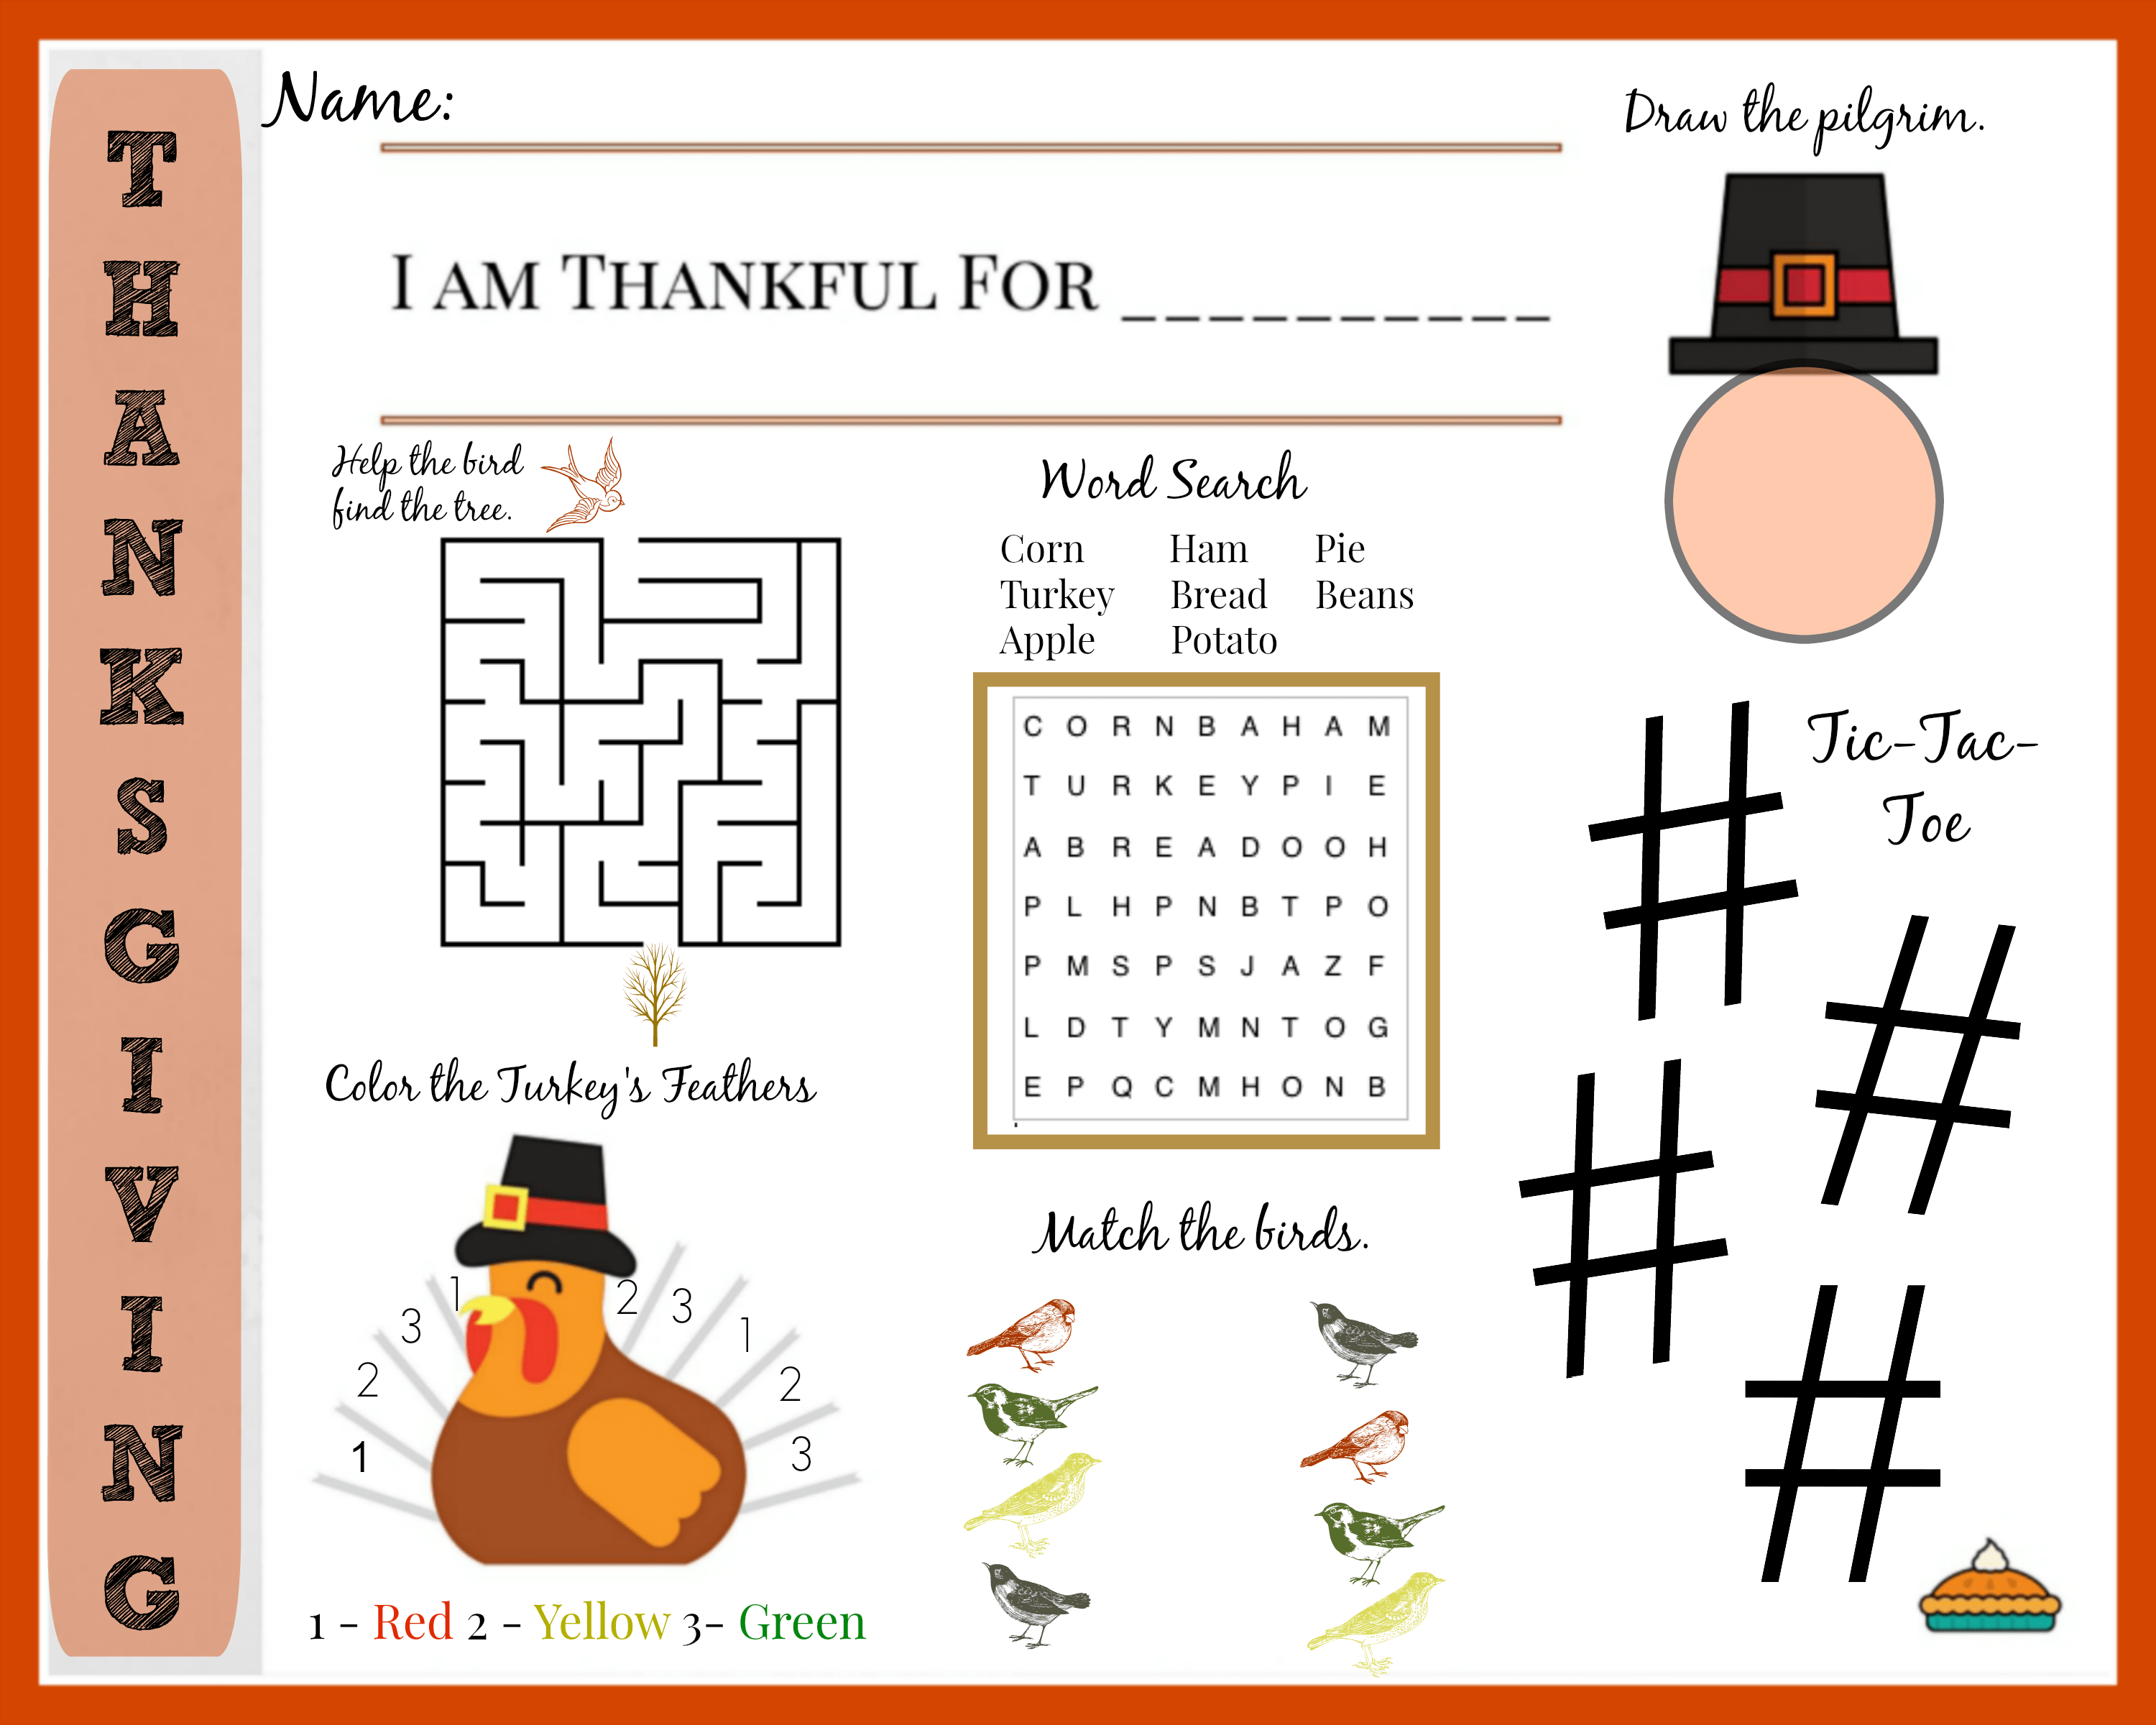 picture about Printable Thanksgiving Placemat named Printable Thanksgiving Placemat for Youngsters with Enjoyment Strategies for